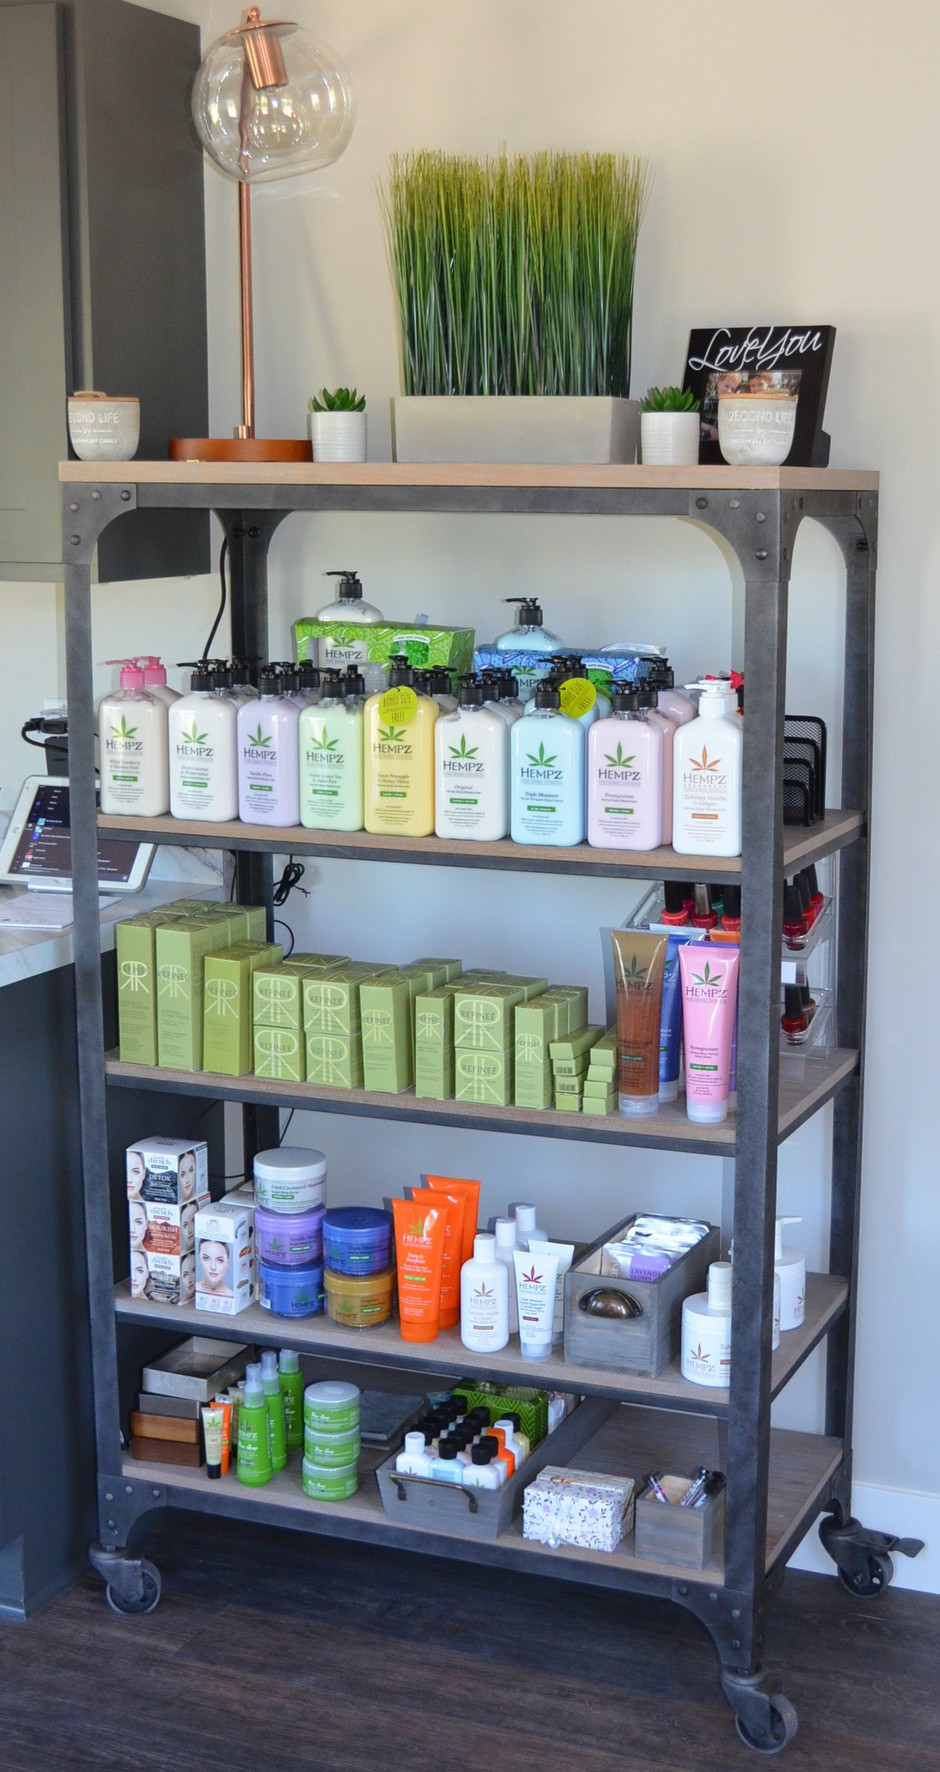 Extended range of products